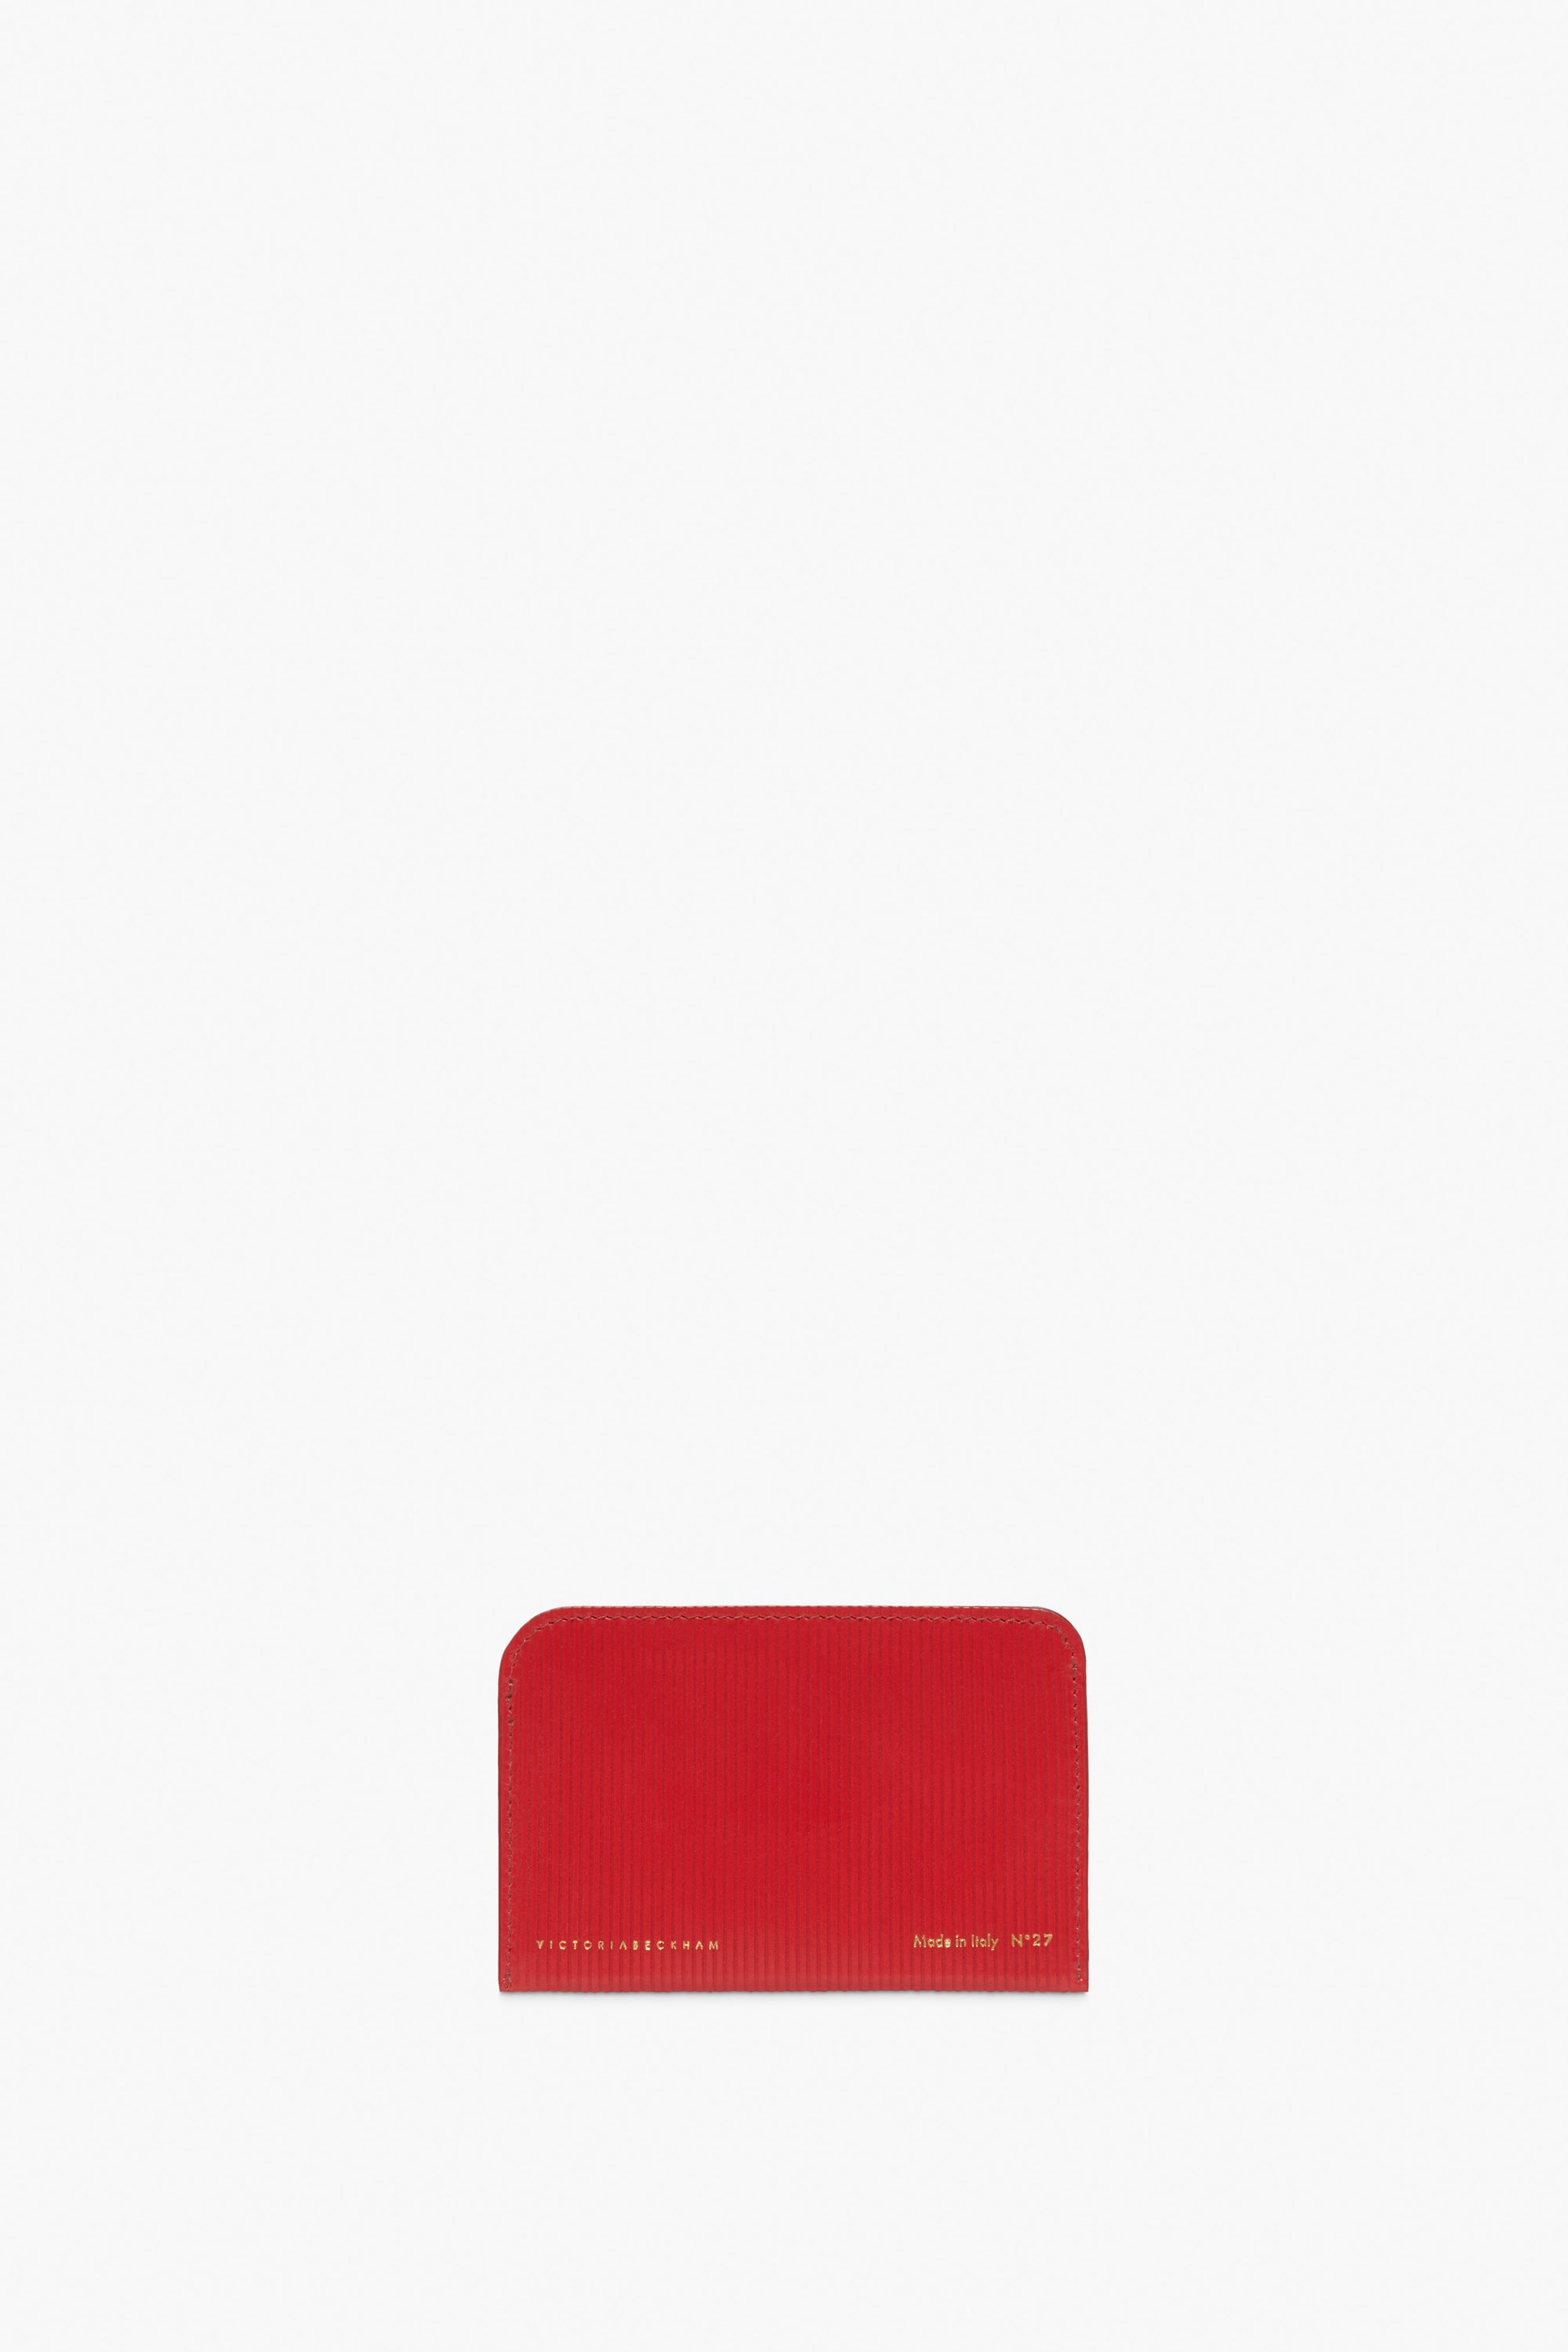 Card Holder In Bright Red